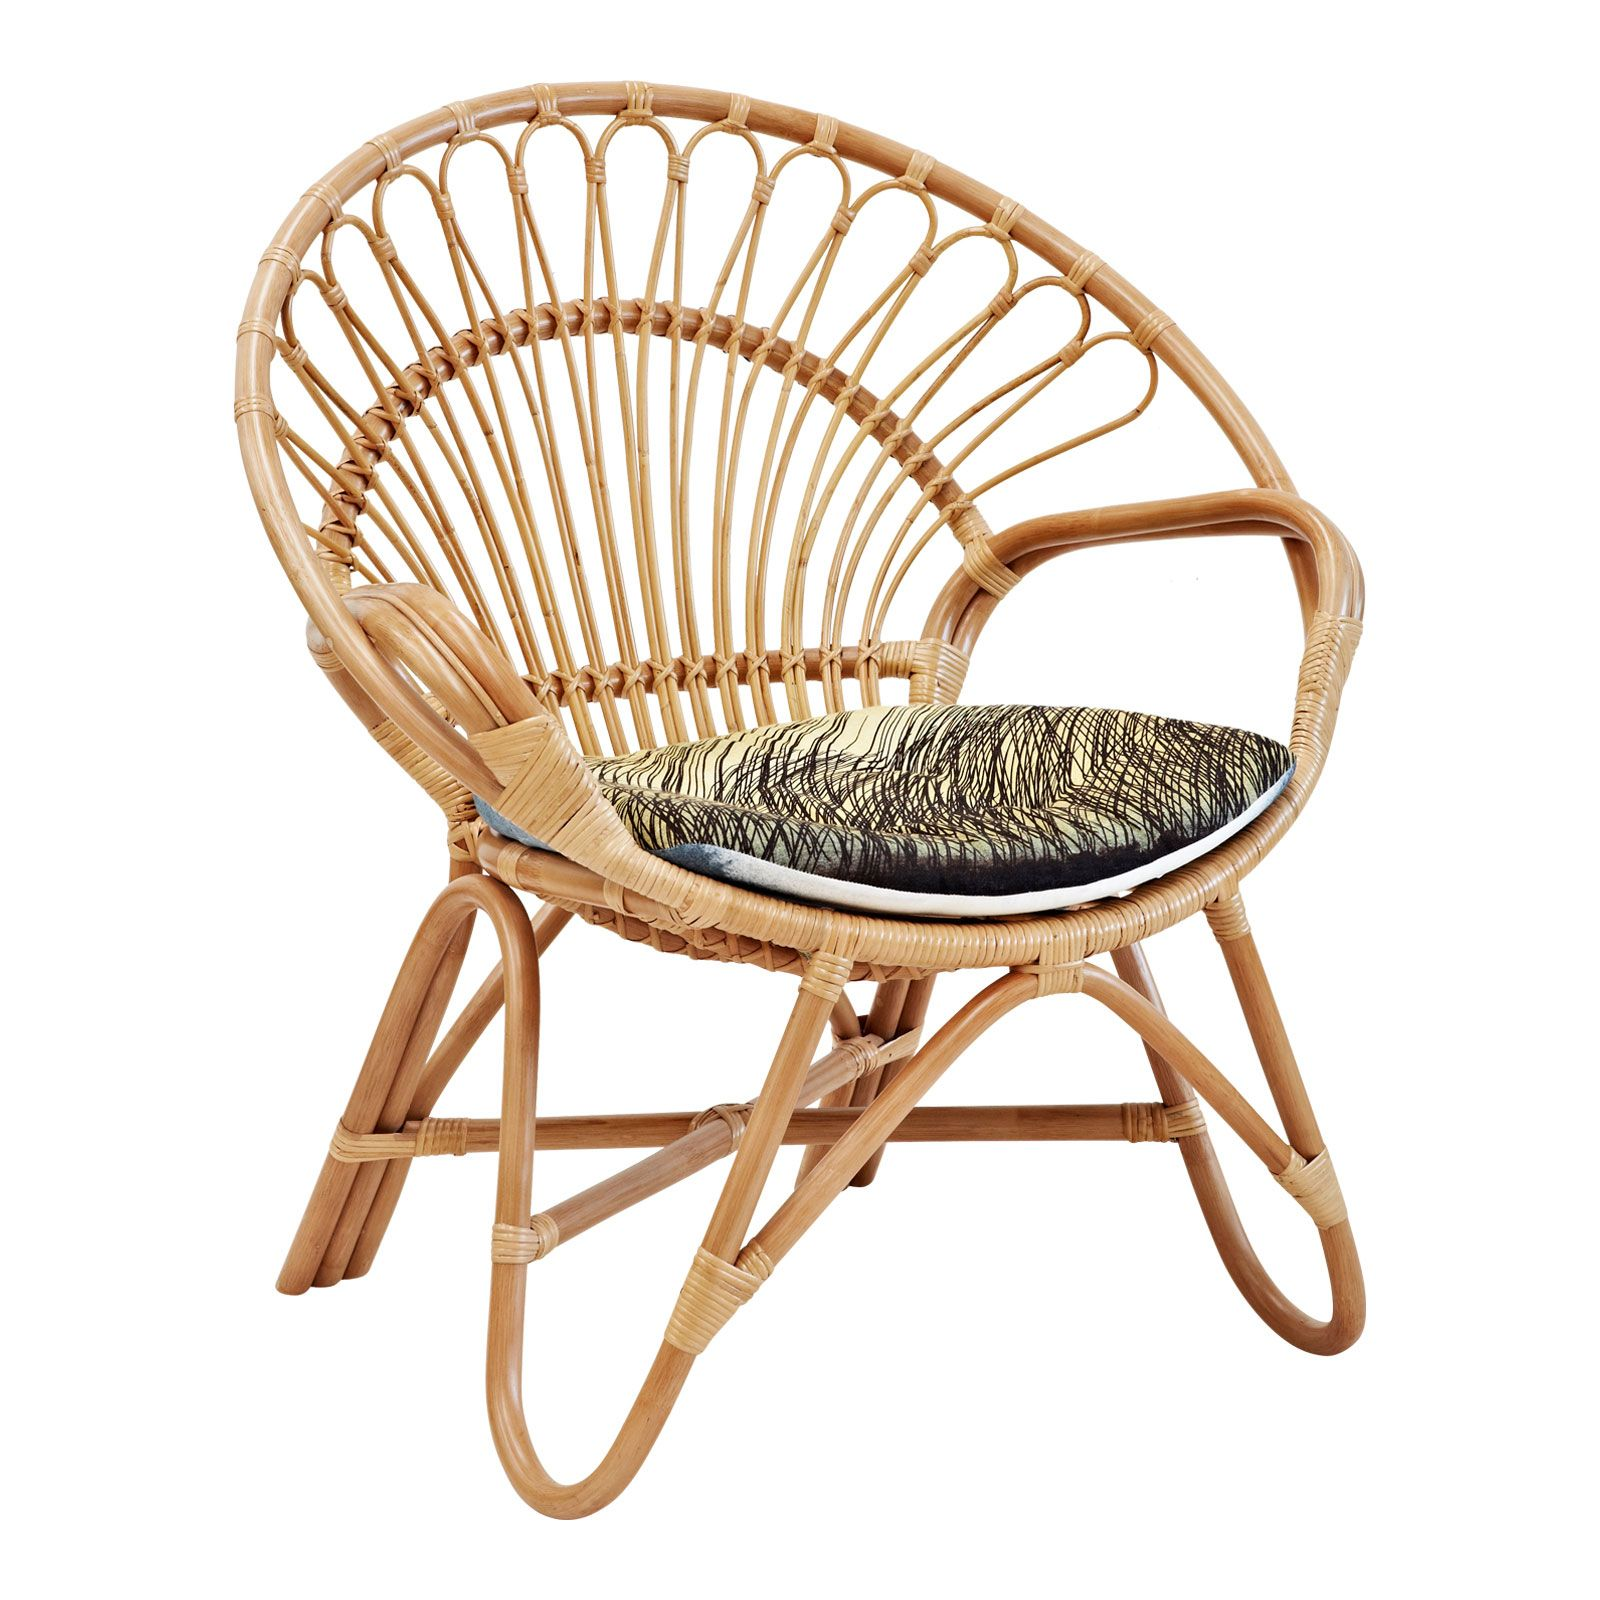 Rattan Rundsessel Appealing Rattan Chair For Outdoor Or Indoor Furniture